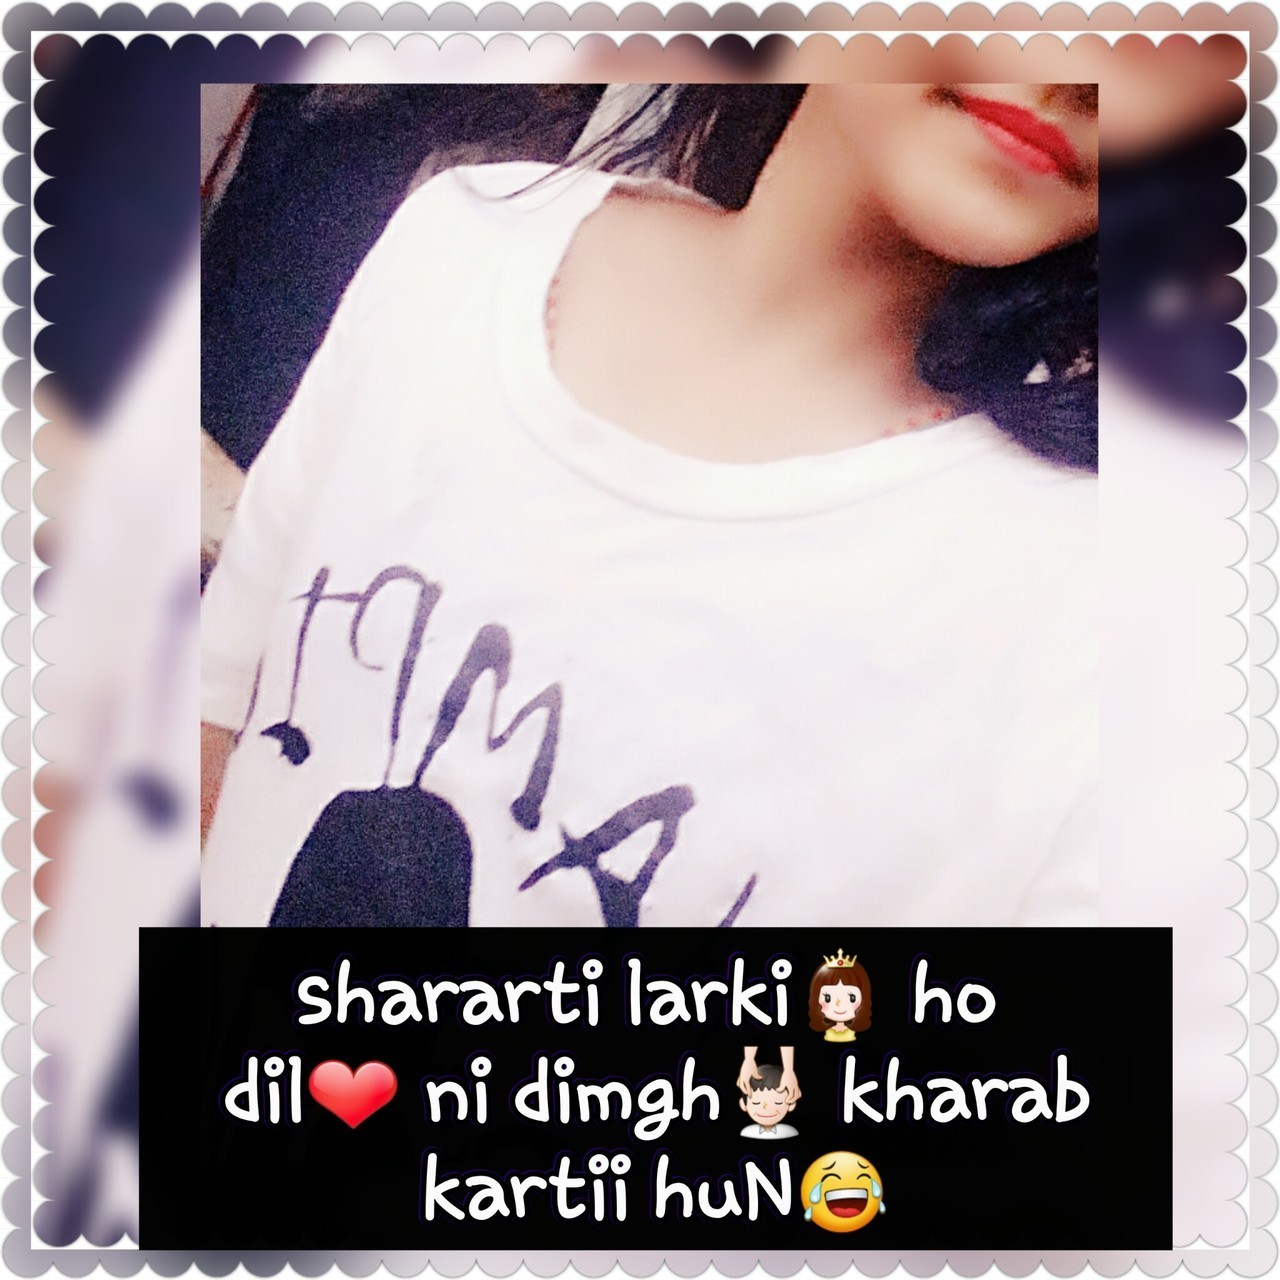 1000+ images about Urdu shayari   ✏ on We Heart It | See more about